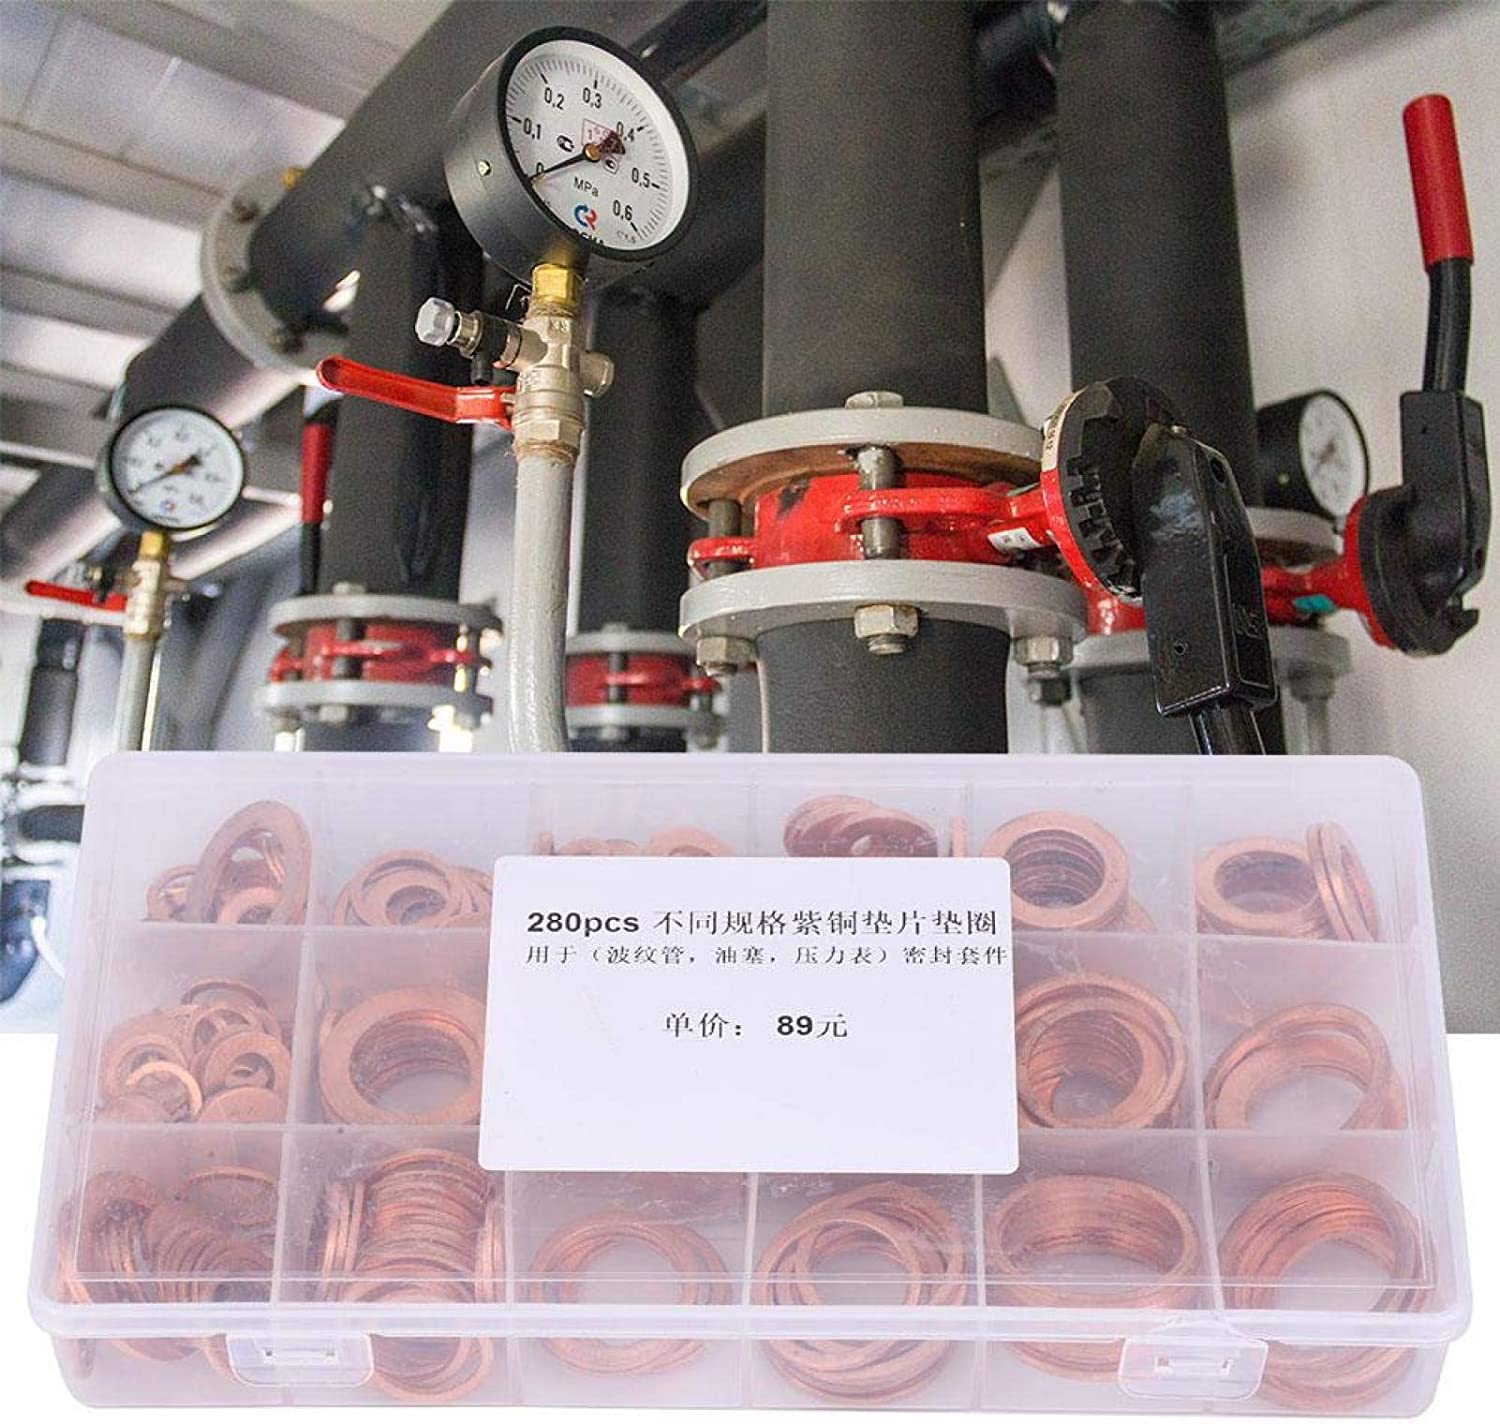 Durable Copper Washer Convenient With A Box 280Pcs for Pressure Gauge Bellows 14 Kinds Gasket